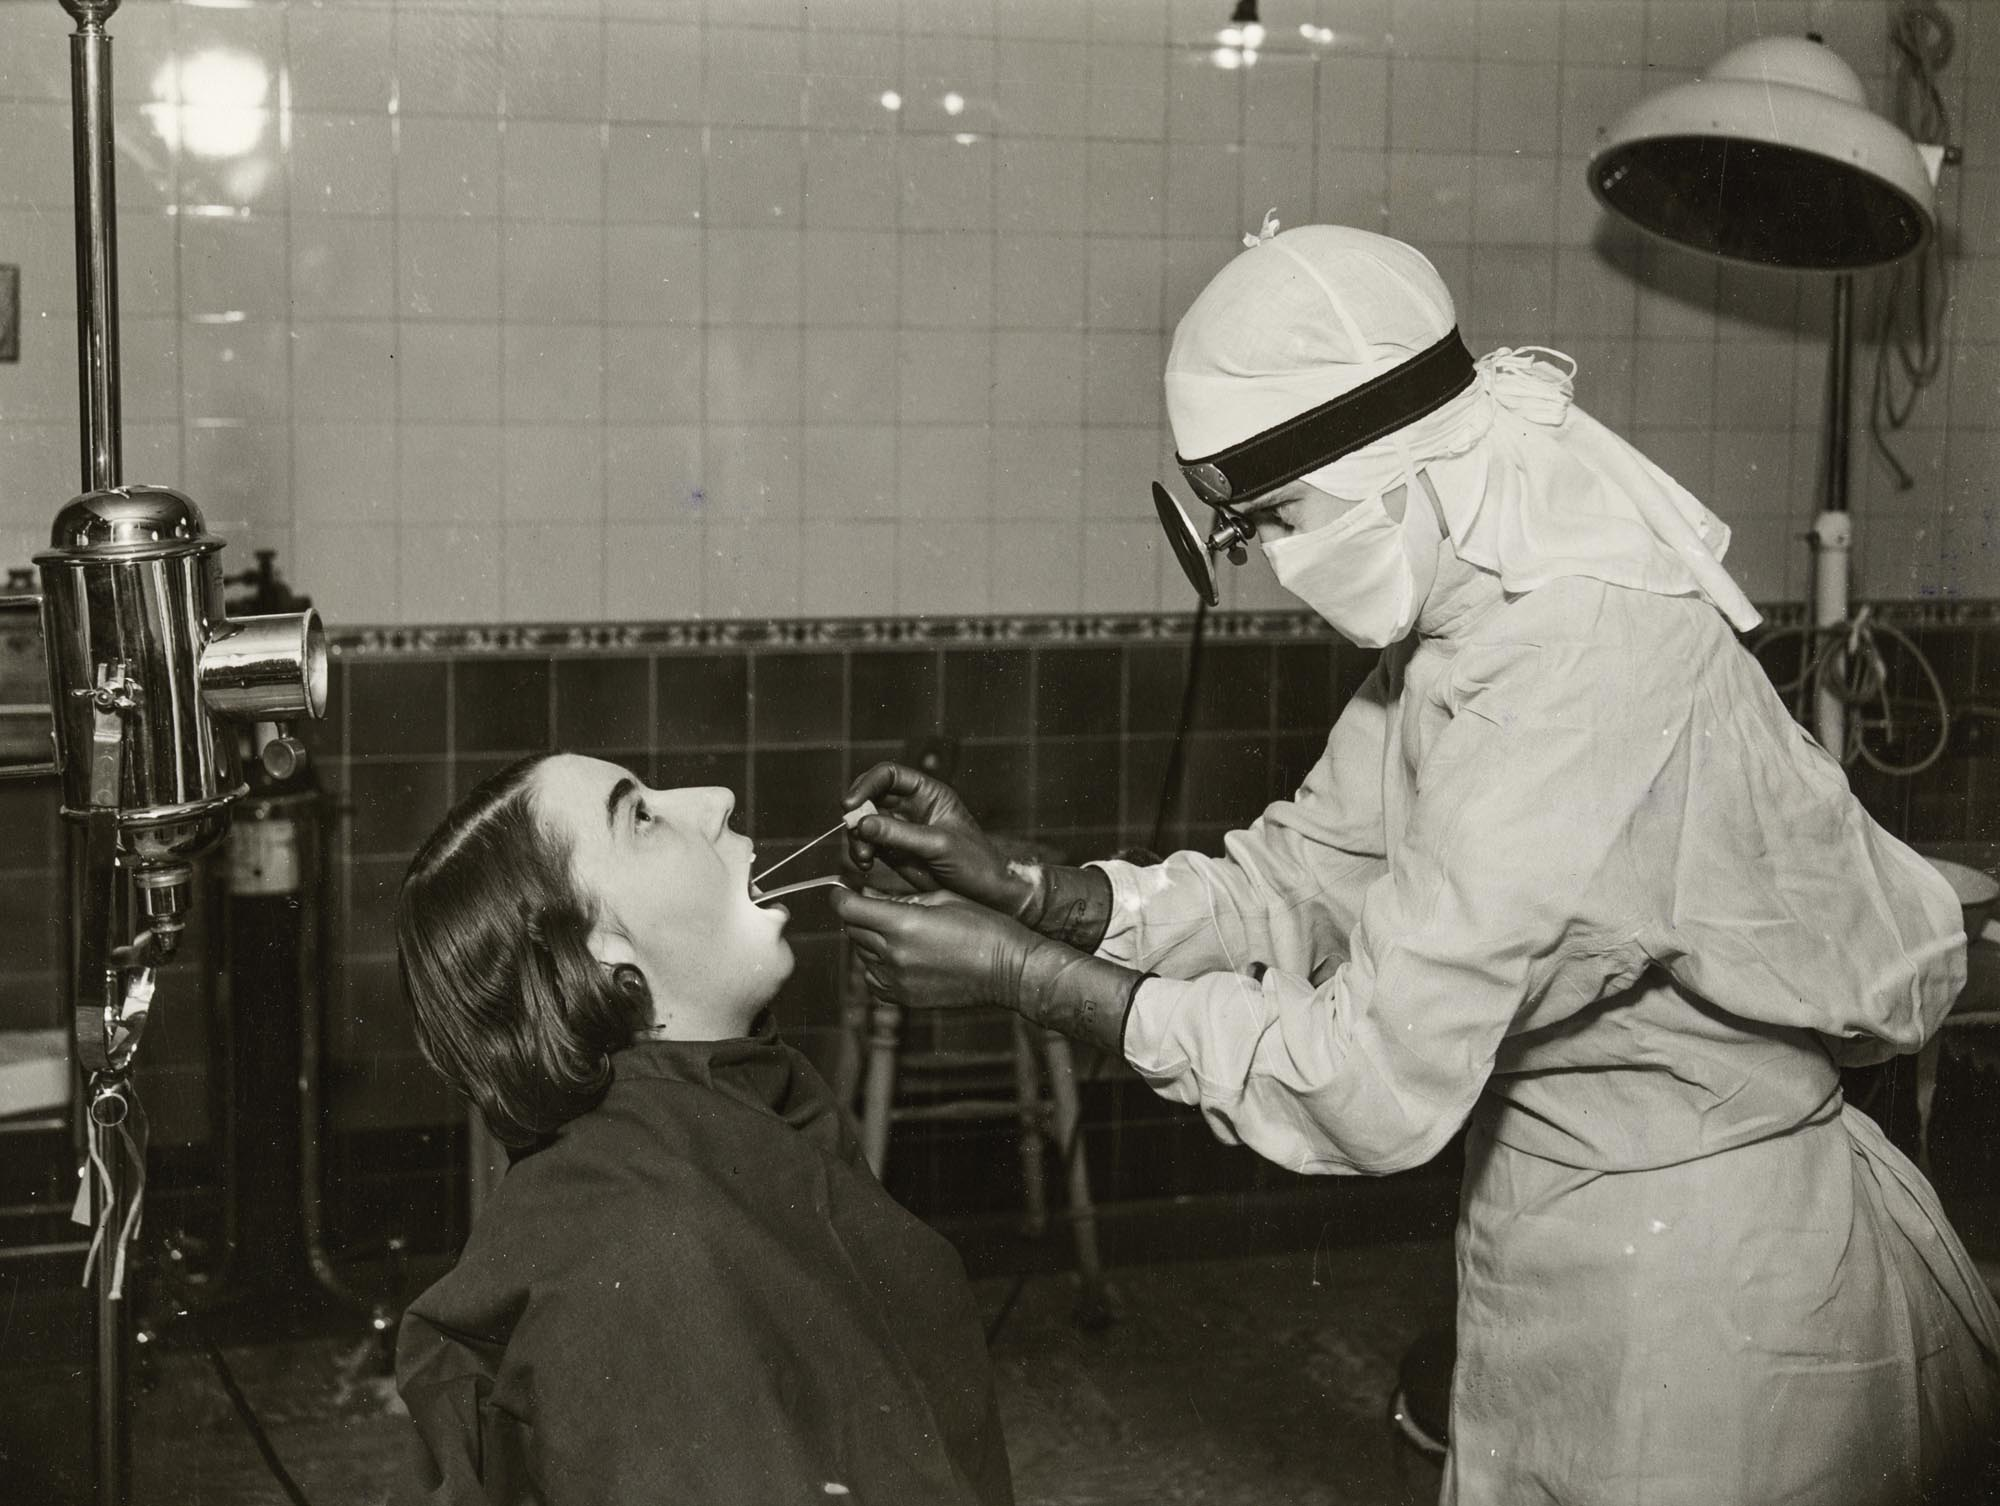 a black and white photo of a figure in white gown taking a swab from an open-mouthed woman